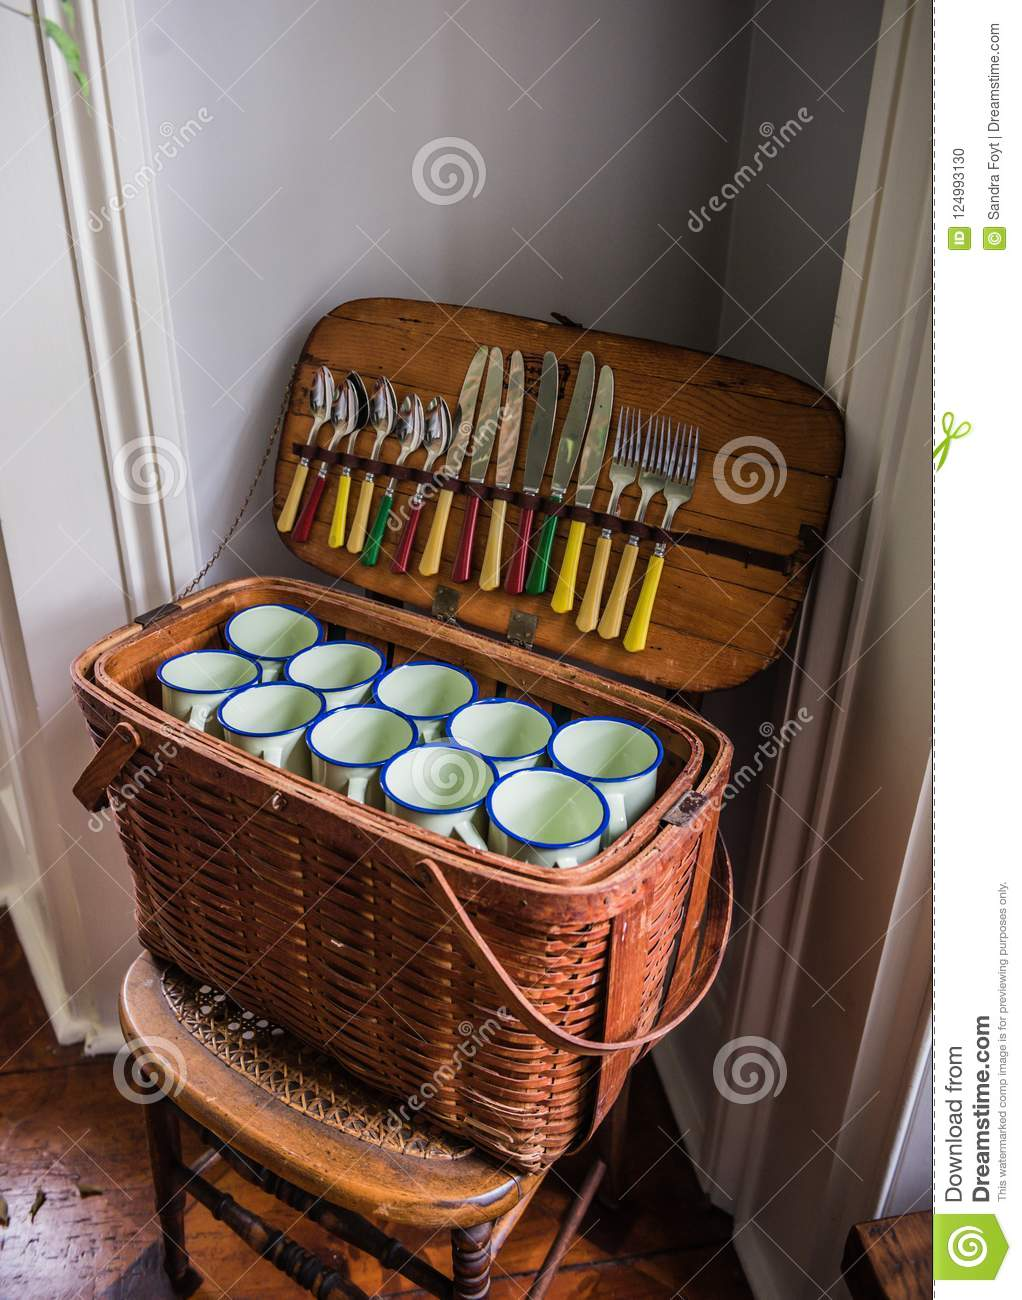 Vintage Picnic Basket On Wicker Chair Stock Photo Image Of Travel Mugs 124993130